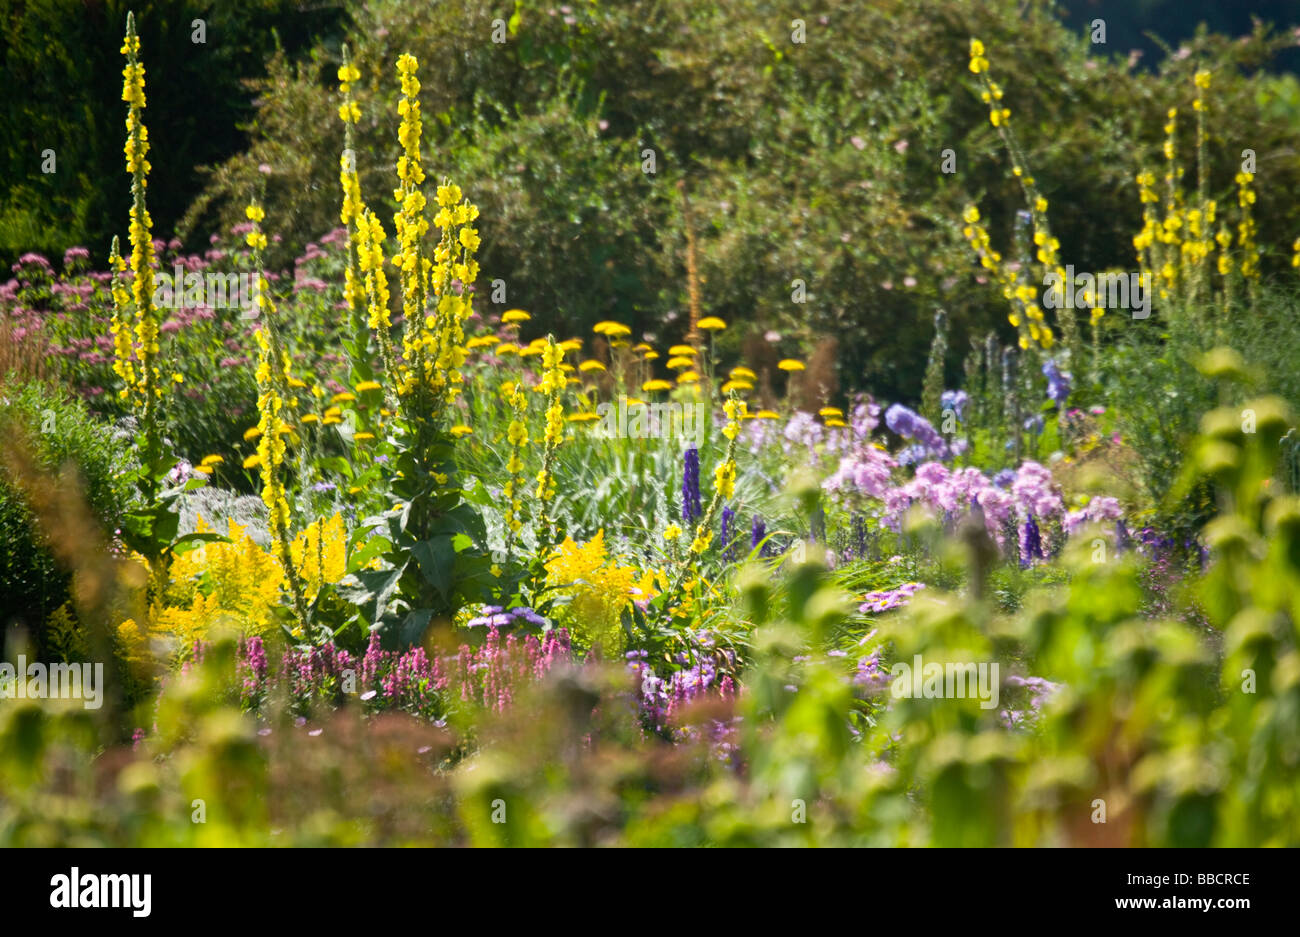 Herbaceous perennial border of tall yellow spikes of verbascum herbaceous perennial border of tall yellow spikes of verbascum yarrow or achillea solidago or golden rod phlox and delphiniums mightylinksfo